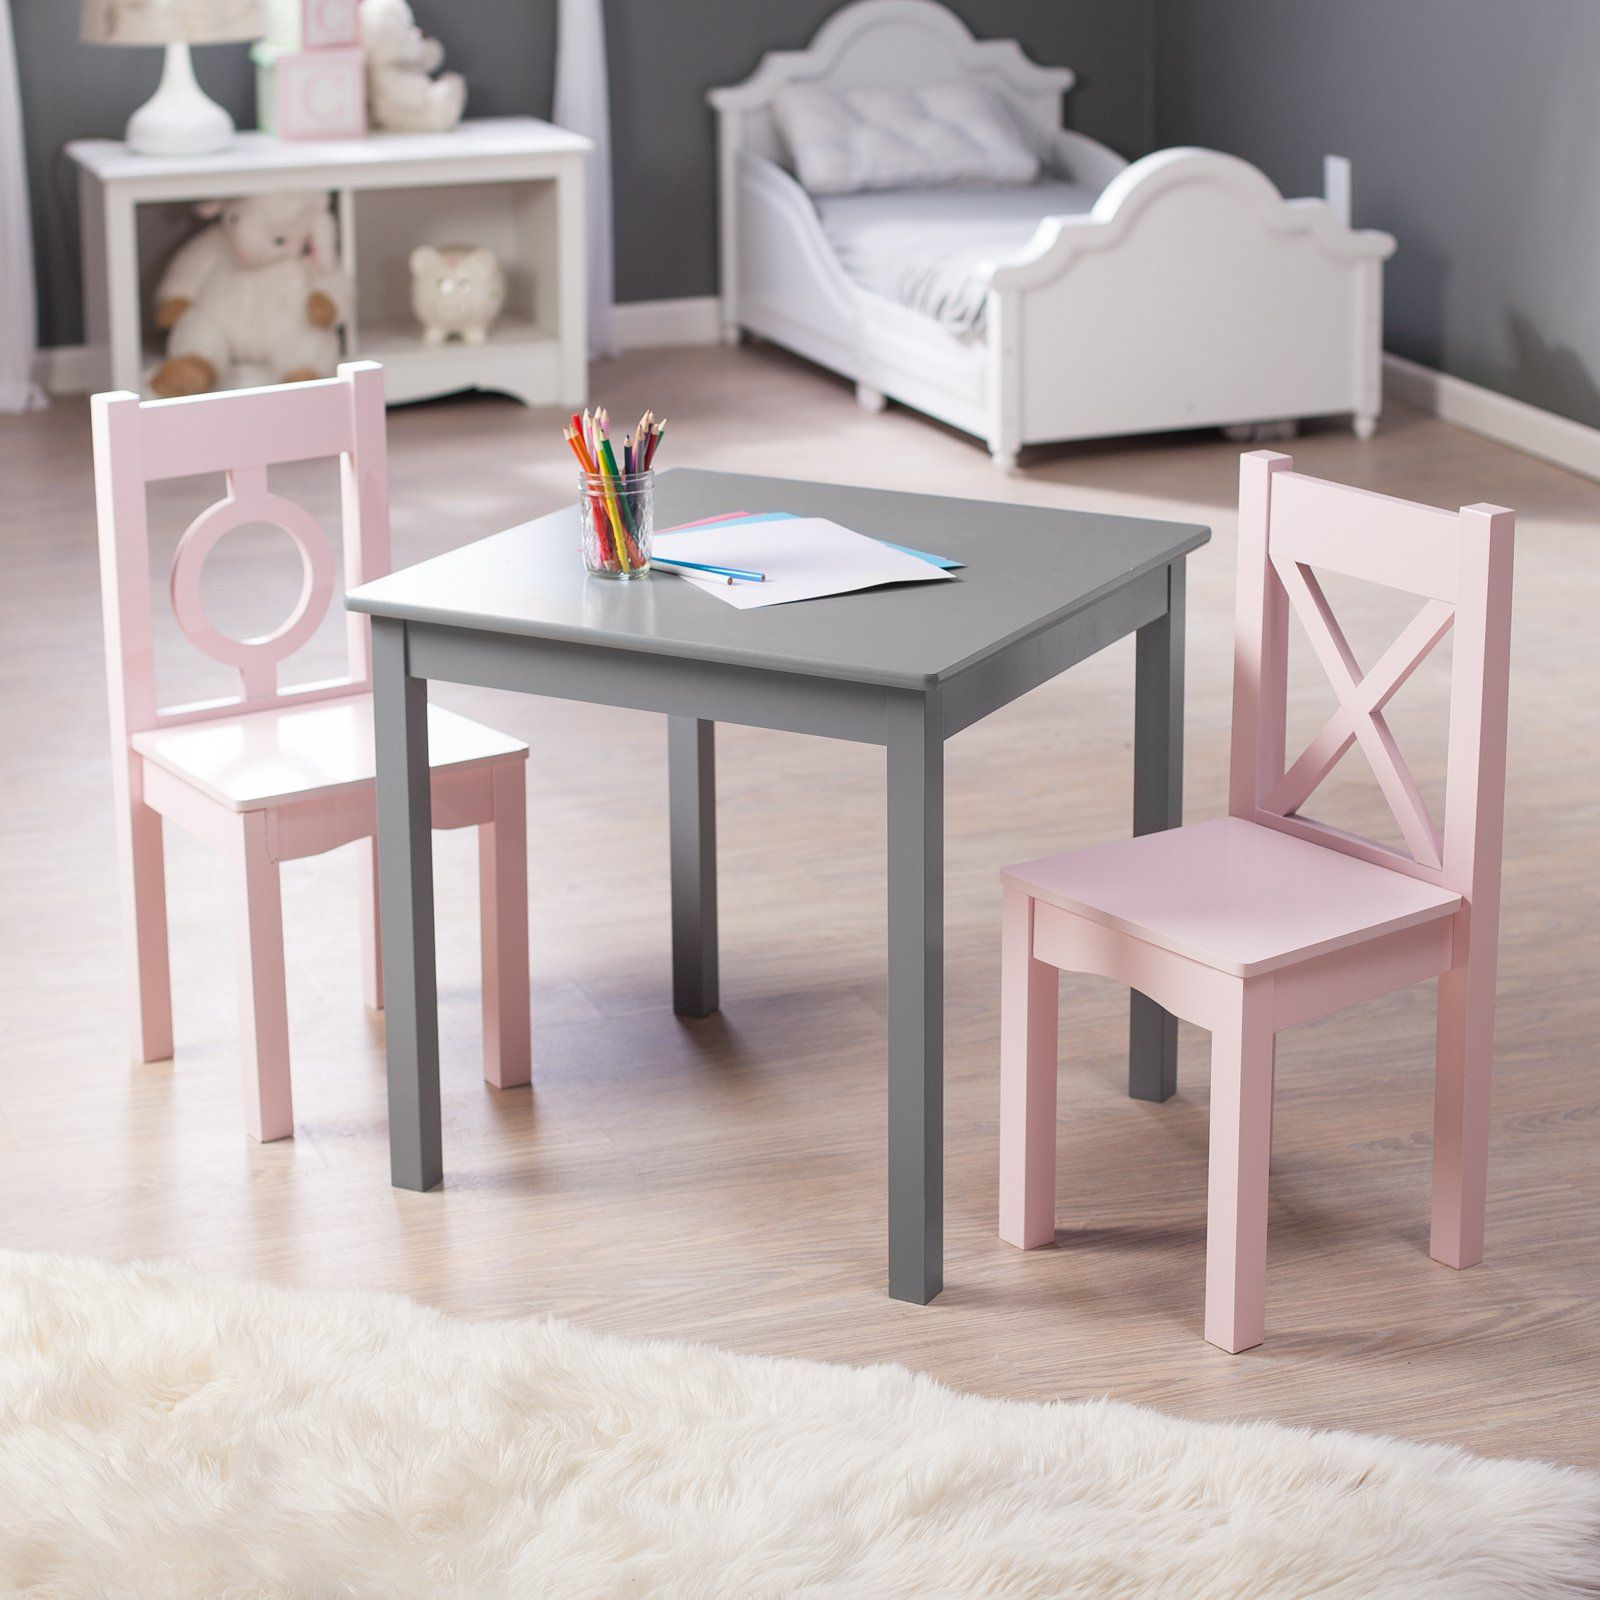 Lipper Hugs and Kisses Table and 2 Chair Set Gray & Pink